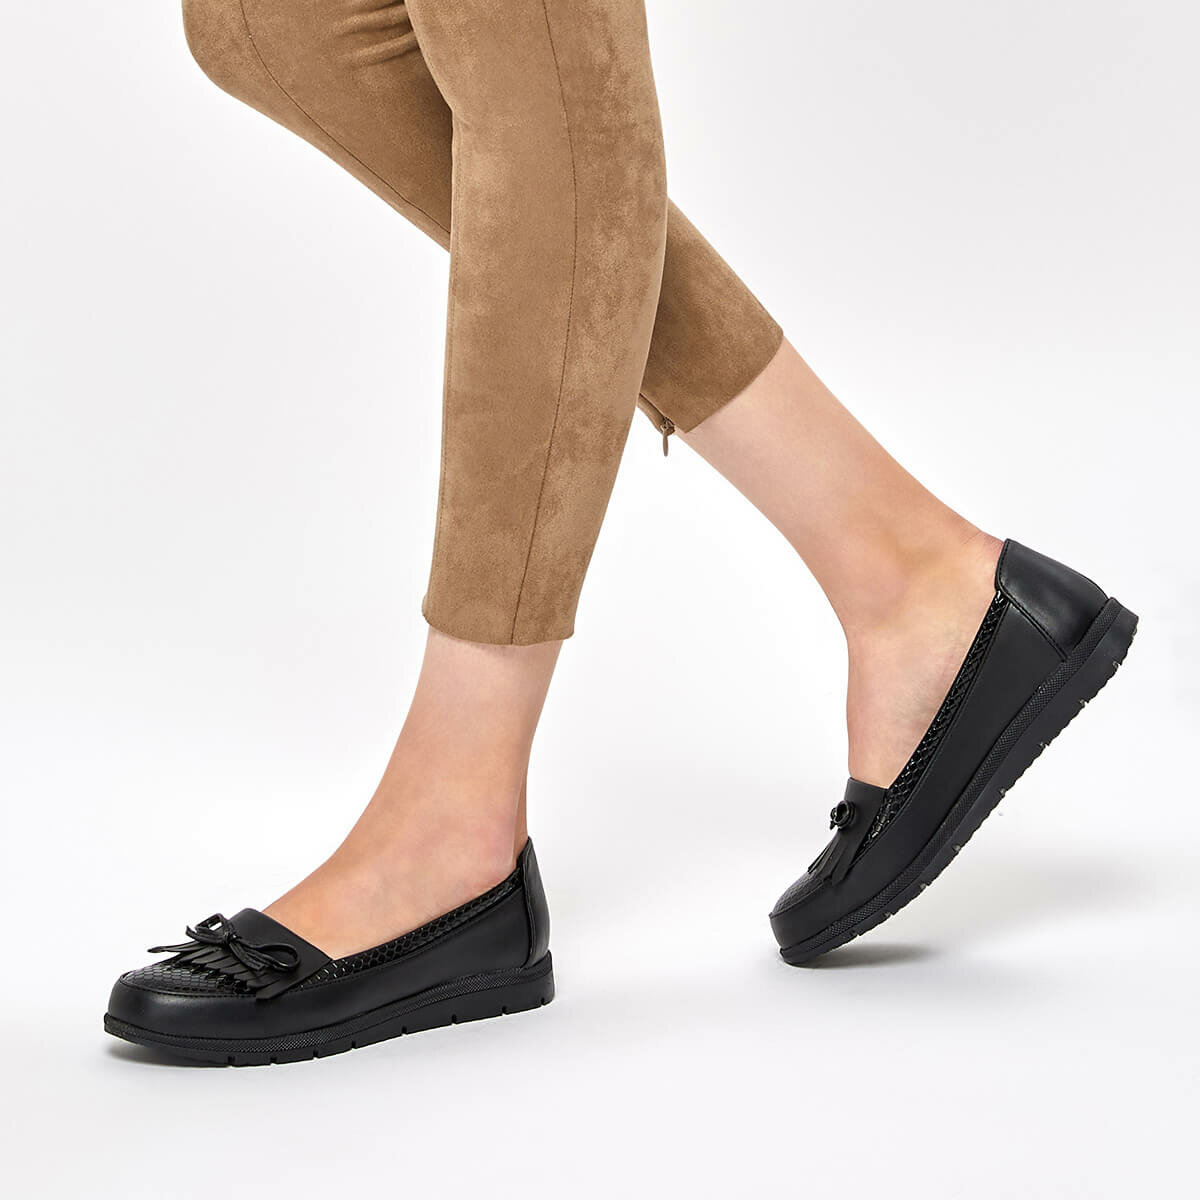 FLO 92.158010.Z Black Women Loafer Shoes Polaris